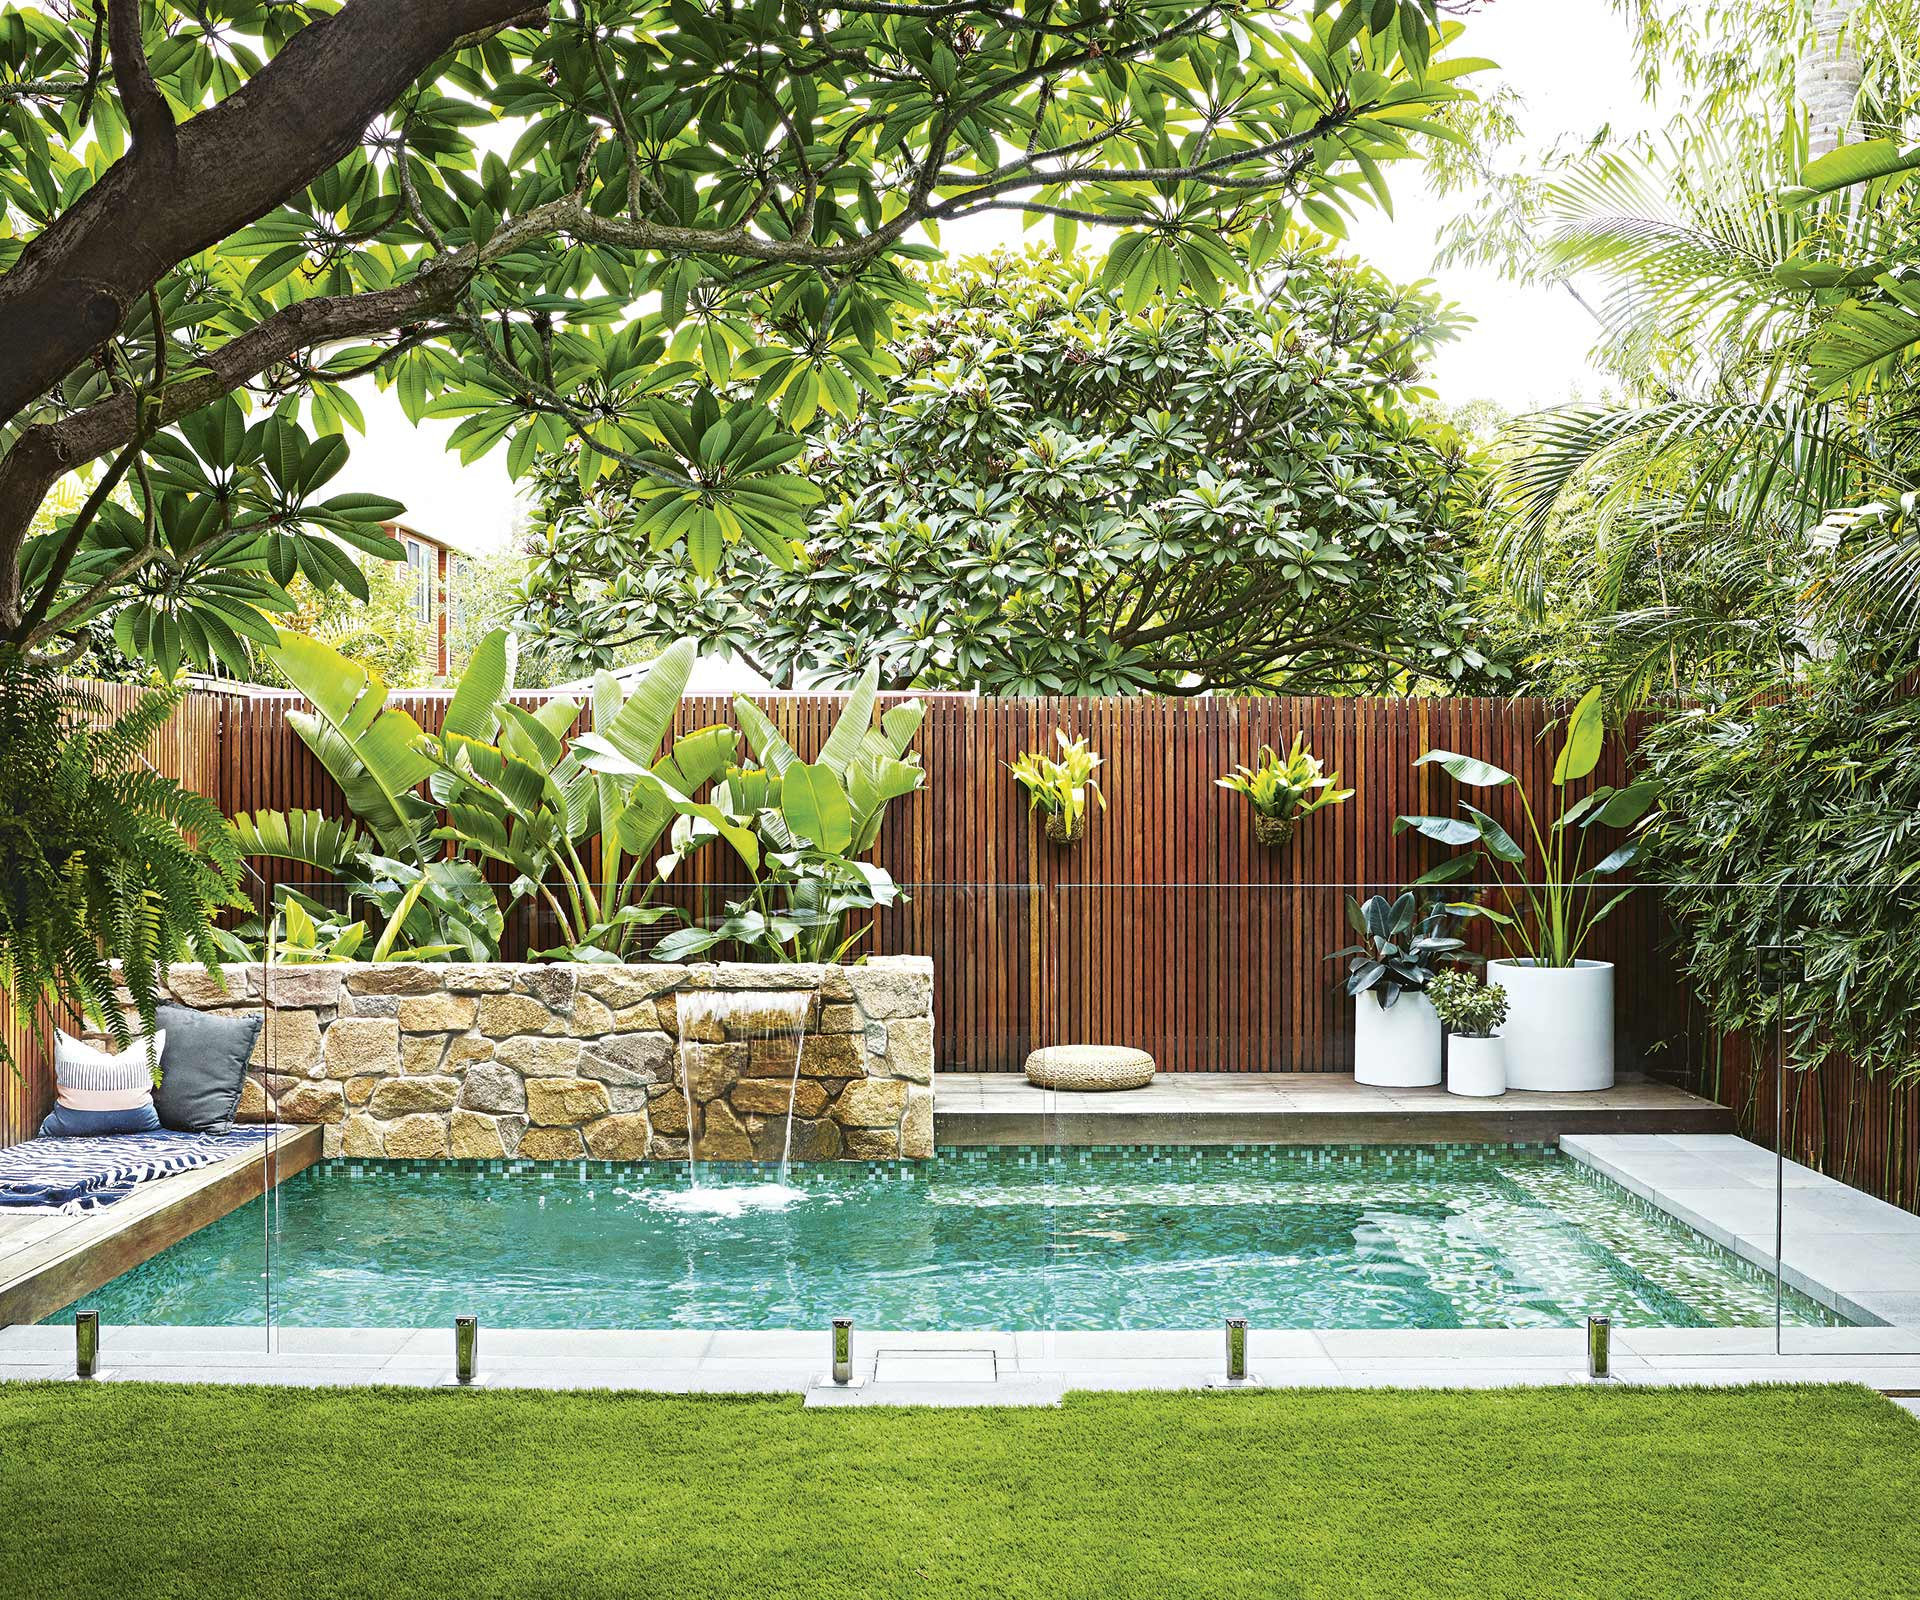 This Compact Sydney Garden Is Inspired By Bali Inside Out